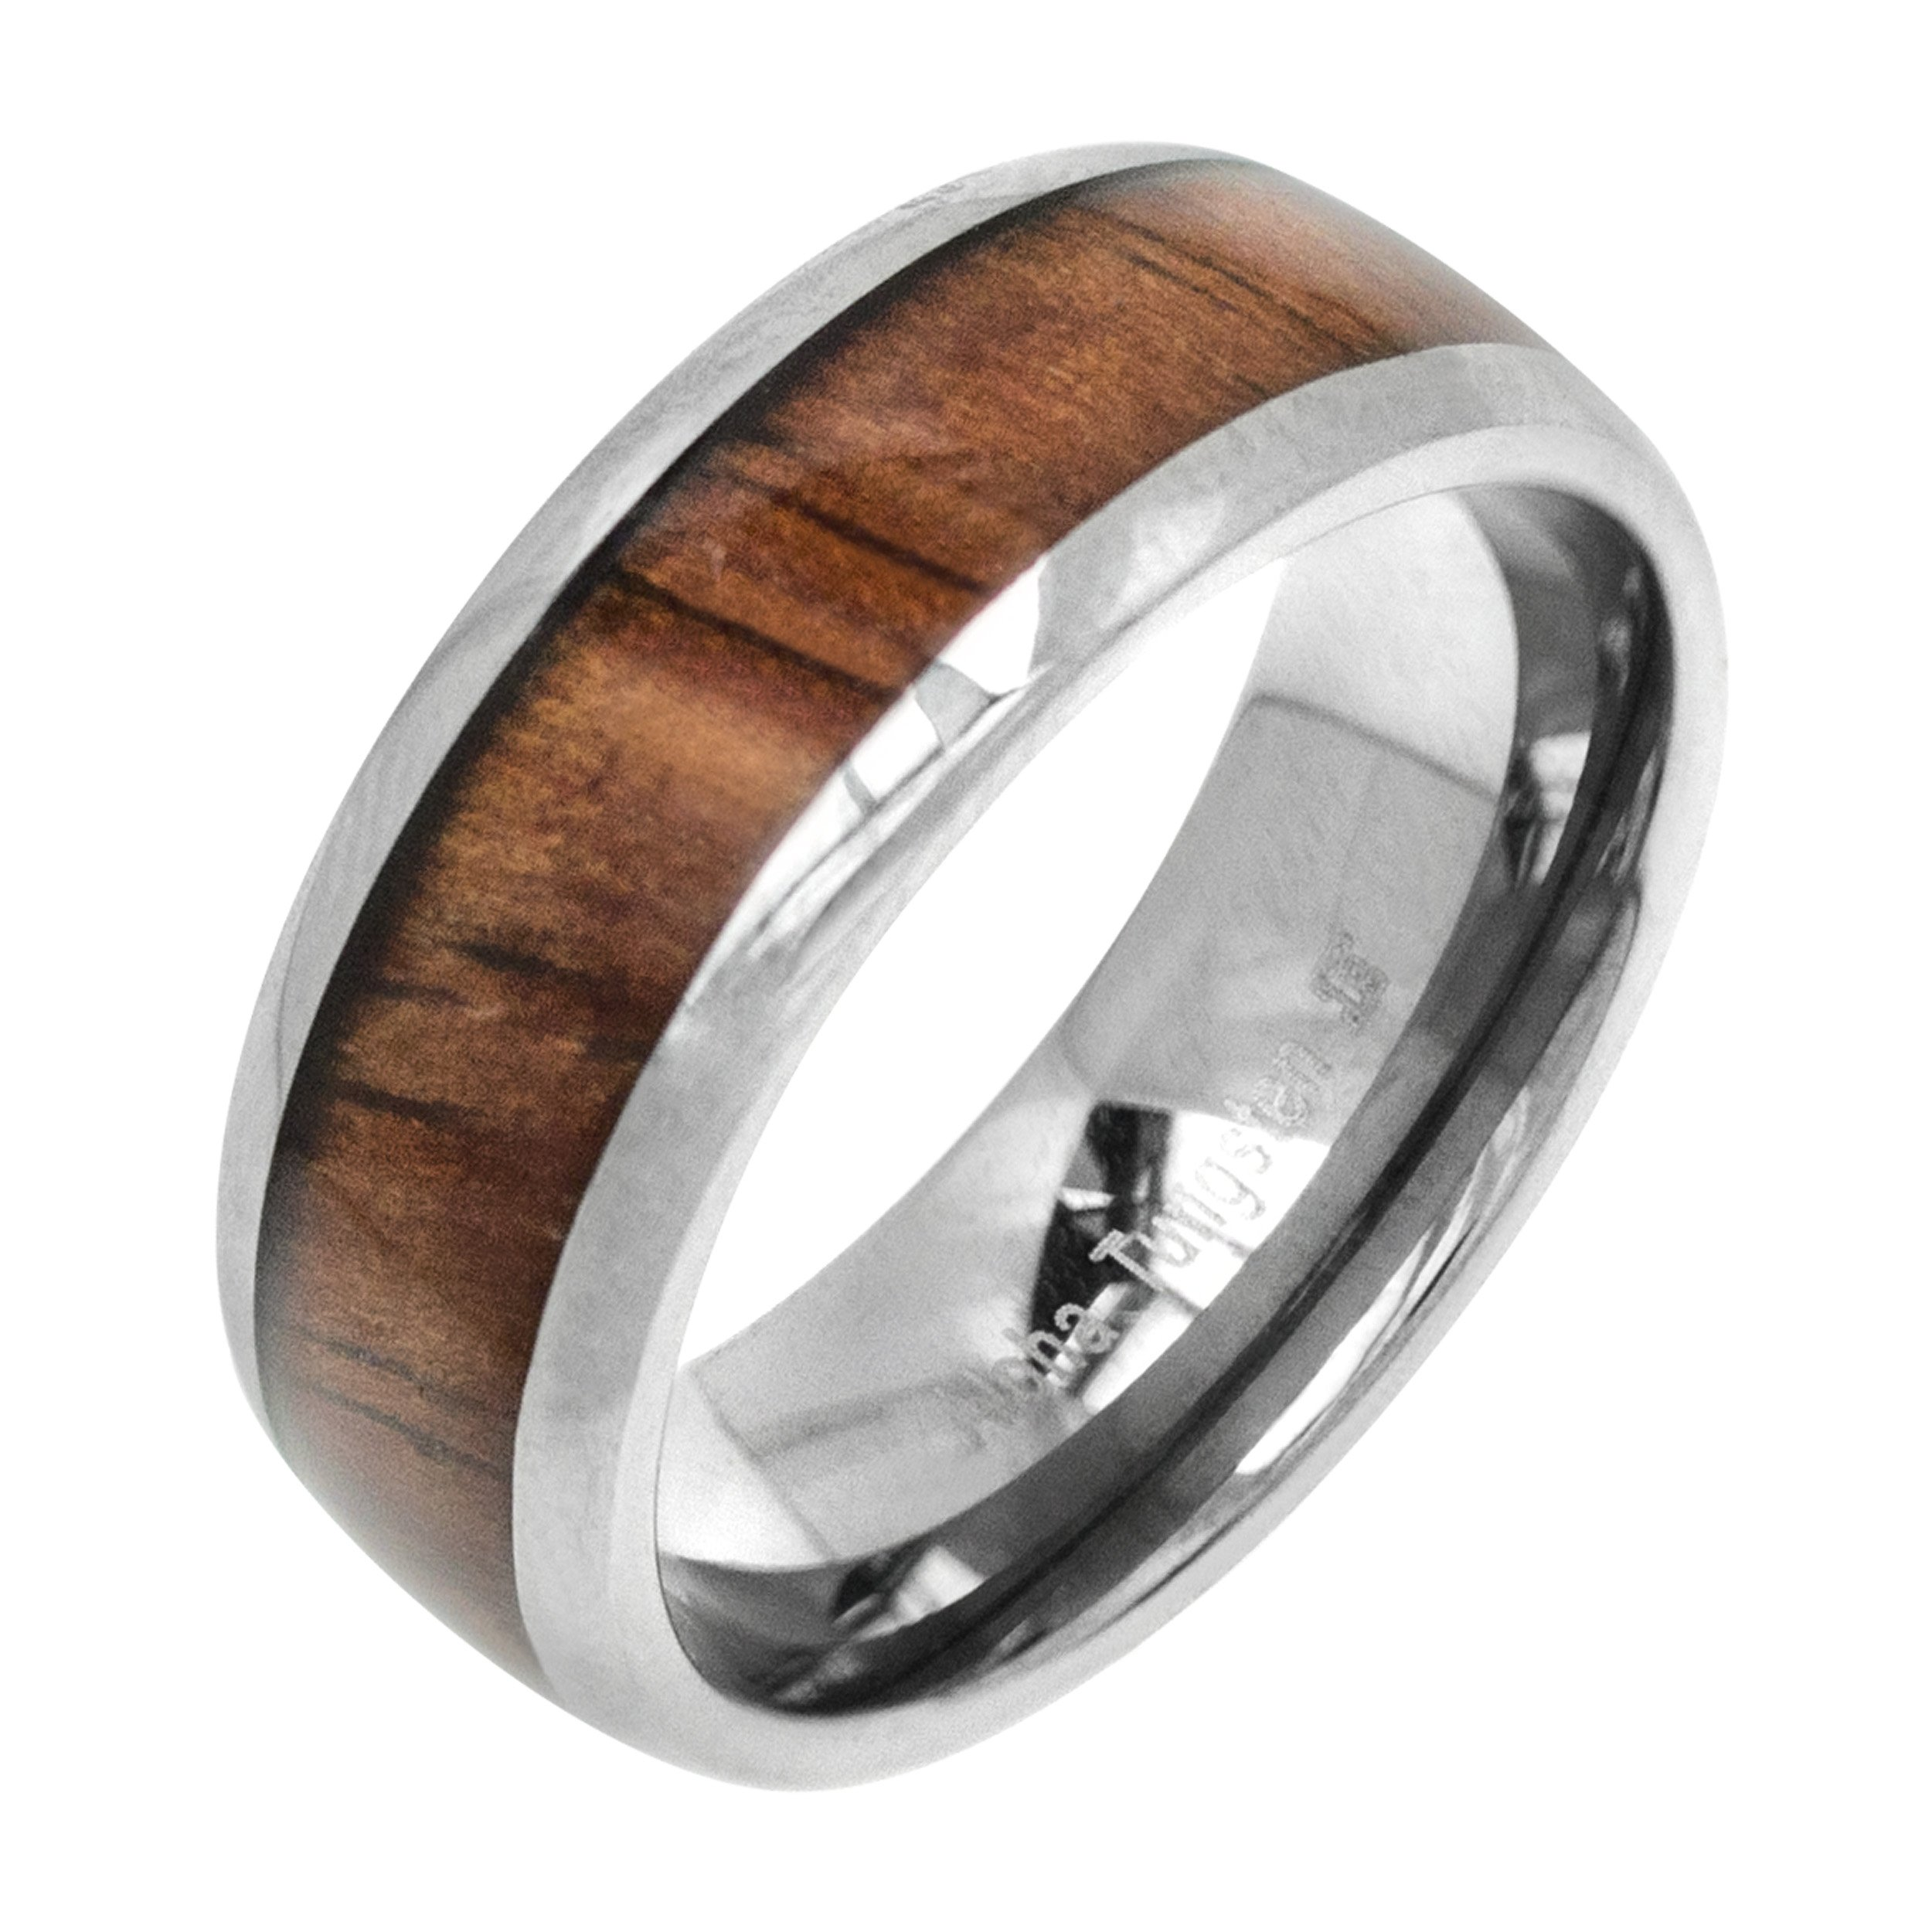 Tungsten Koa Wood 8mm Ring (10)